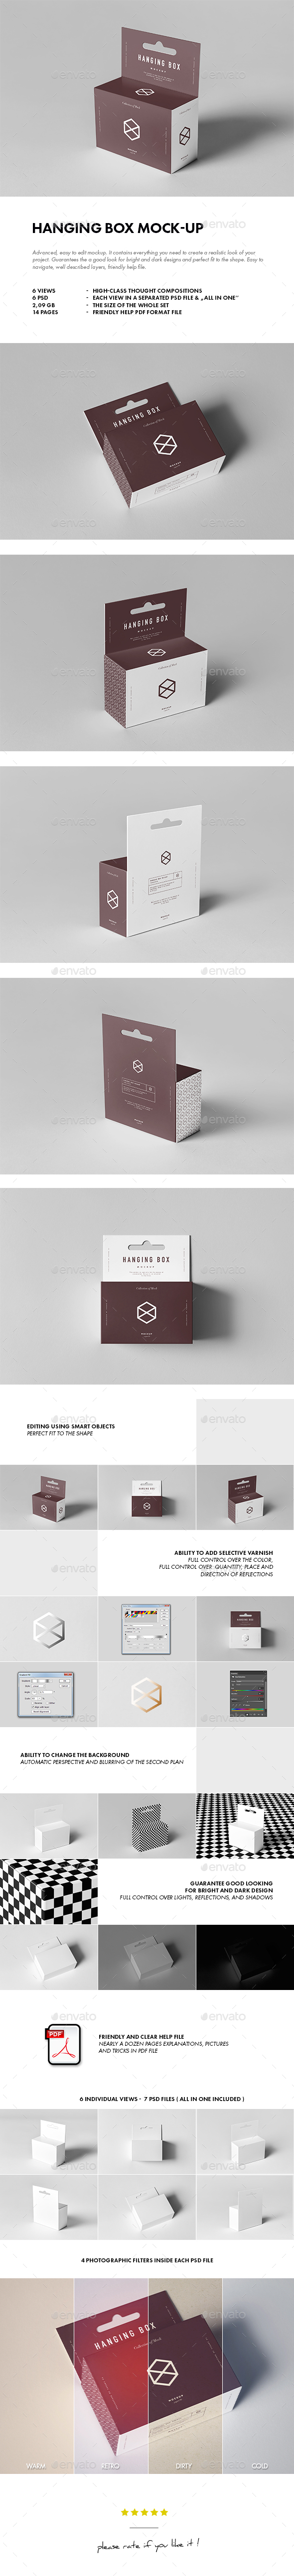 Graphicriver Hanging Box Mock-up 19656456